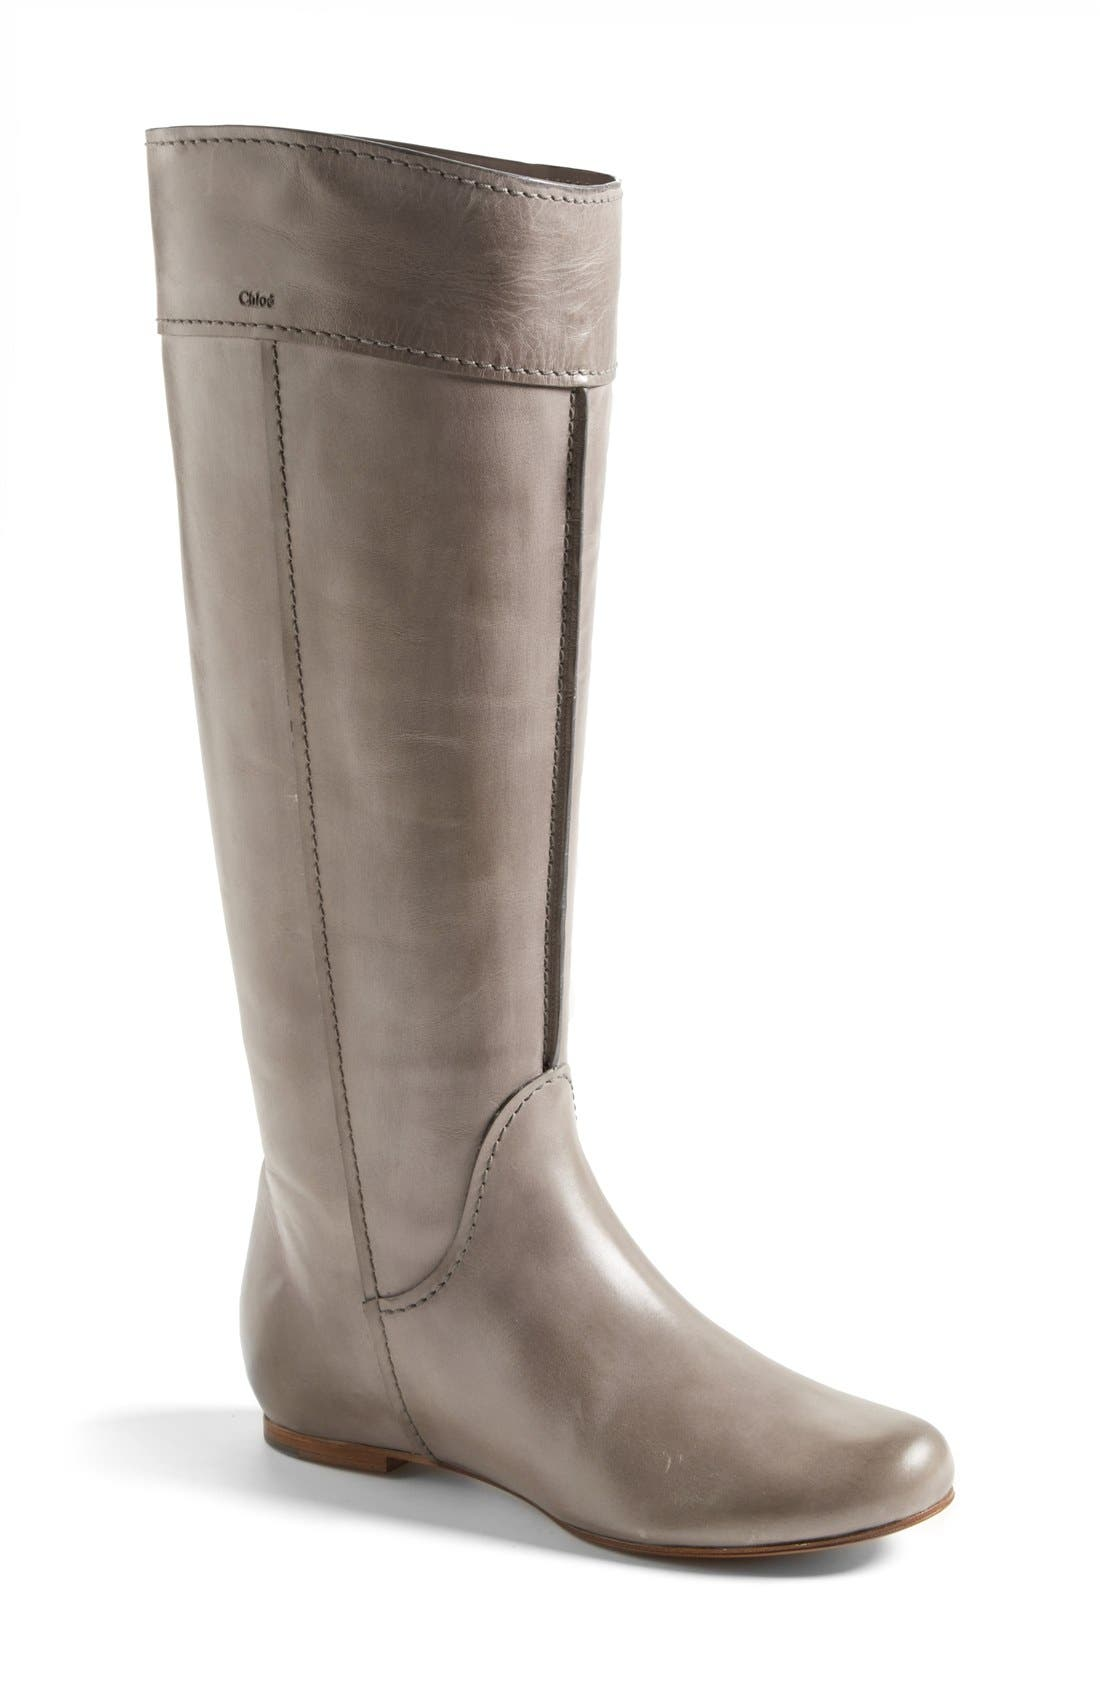 Alternate Image 1 Selected - Chloé 'Heloise' Tall Calfskin Leather Boot (Women)